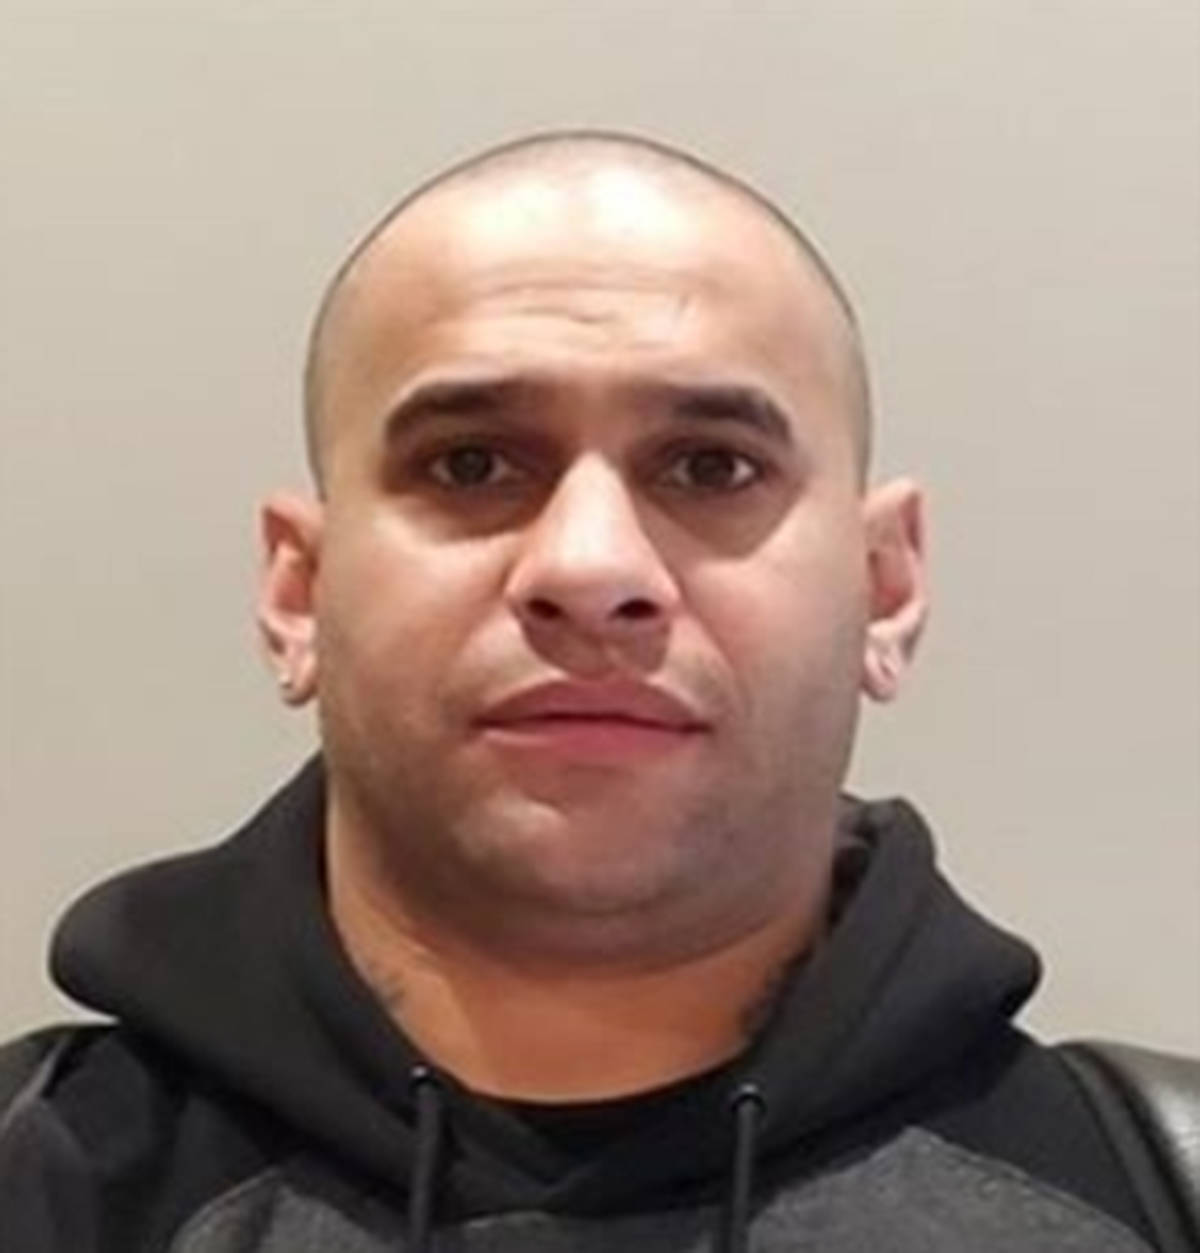 """Name: DOUGLAS, Joseph Age: 35 Height: 5'9"""" ft Weight: 200 lbs Hair: Shaved Eyes: Brown Wanted: Unlawfully at Large Warrant in effect: June 14, 2021 Parole Jurisdiction: Coquitlam, BC"""